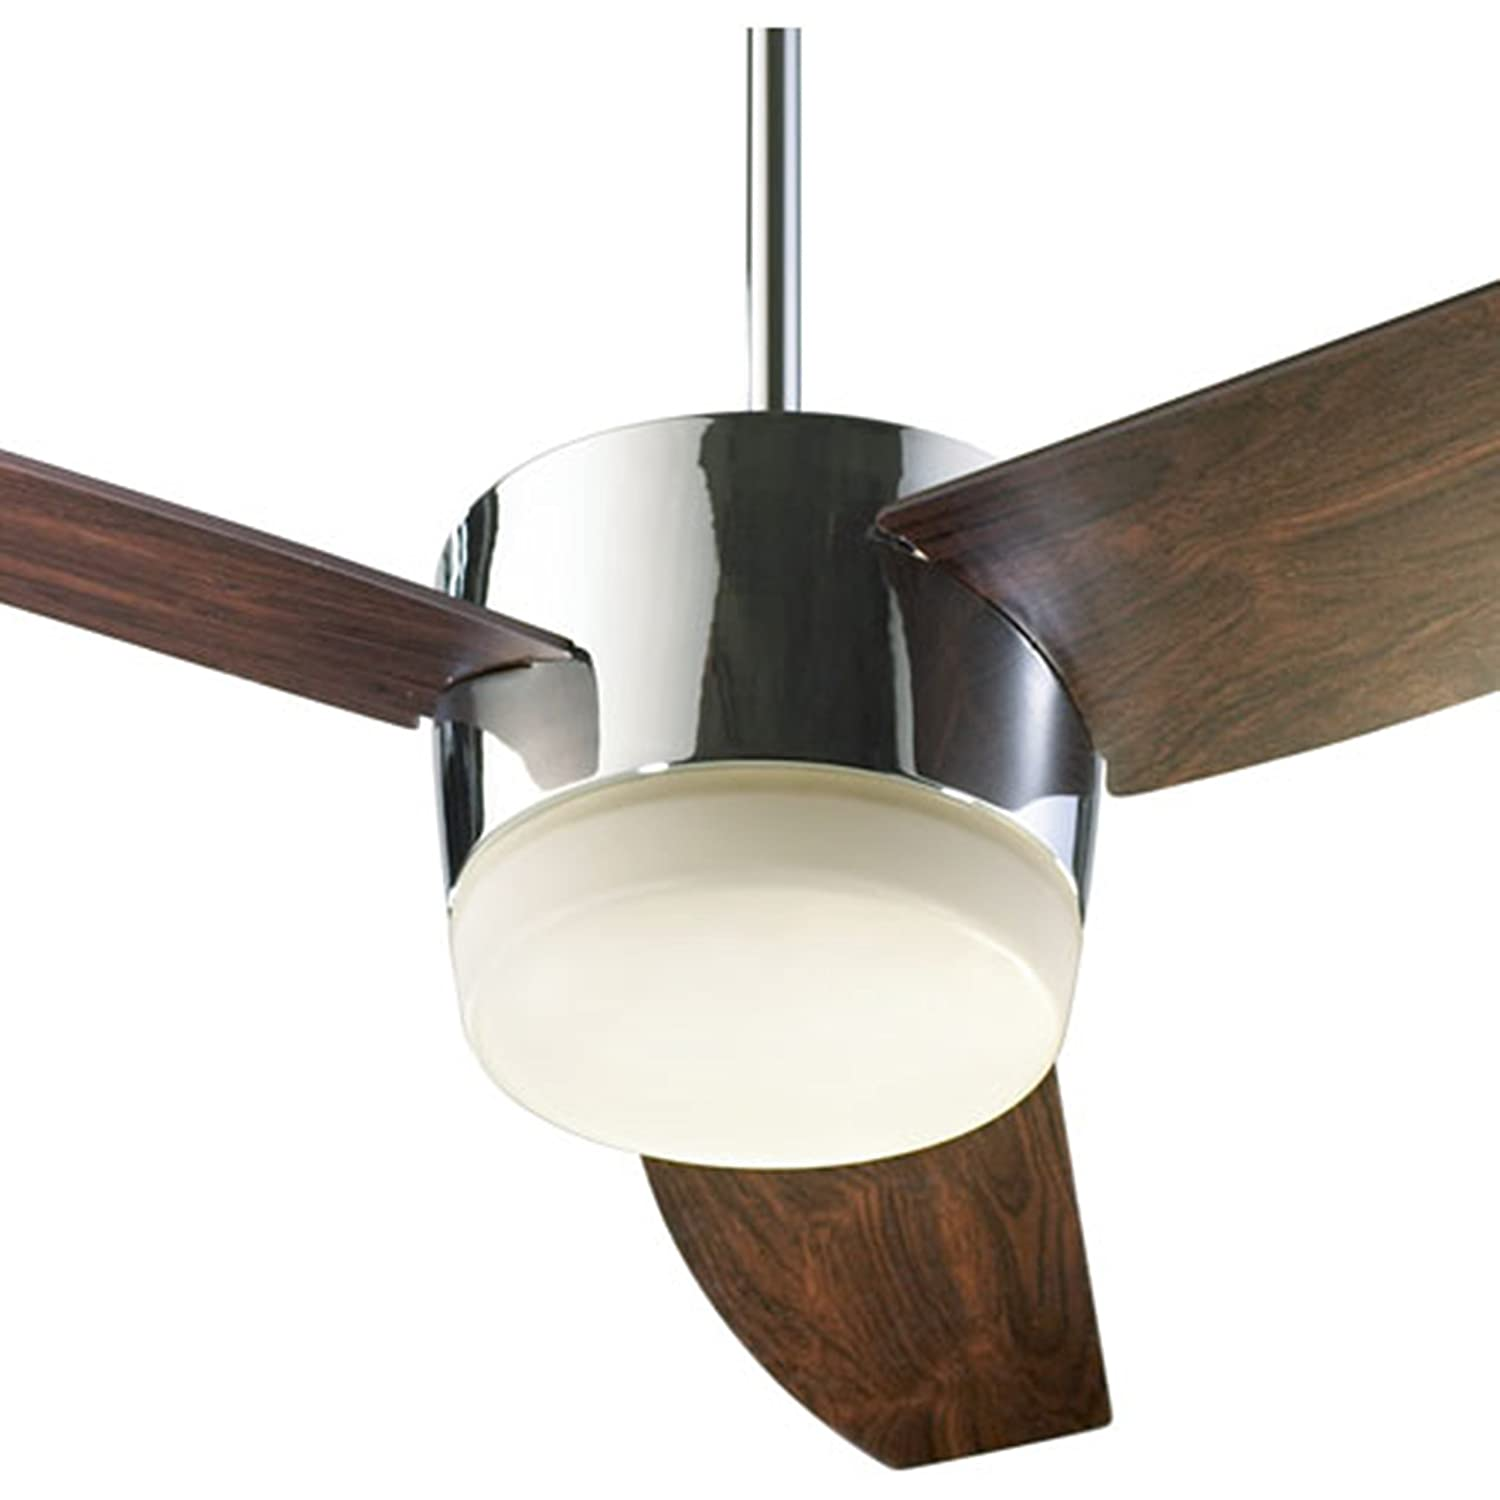 71Otnx1lT6L._SL1500_ quorum international 20543 914 trimark 54 inch ceiling fan, chrome quorum windmill ceiling fan wiring diagram at panicattacktreatment.co